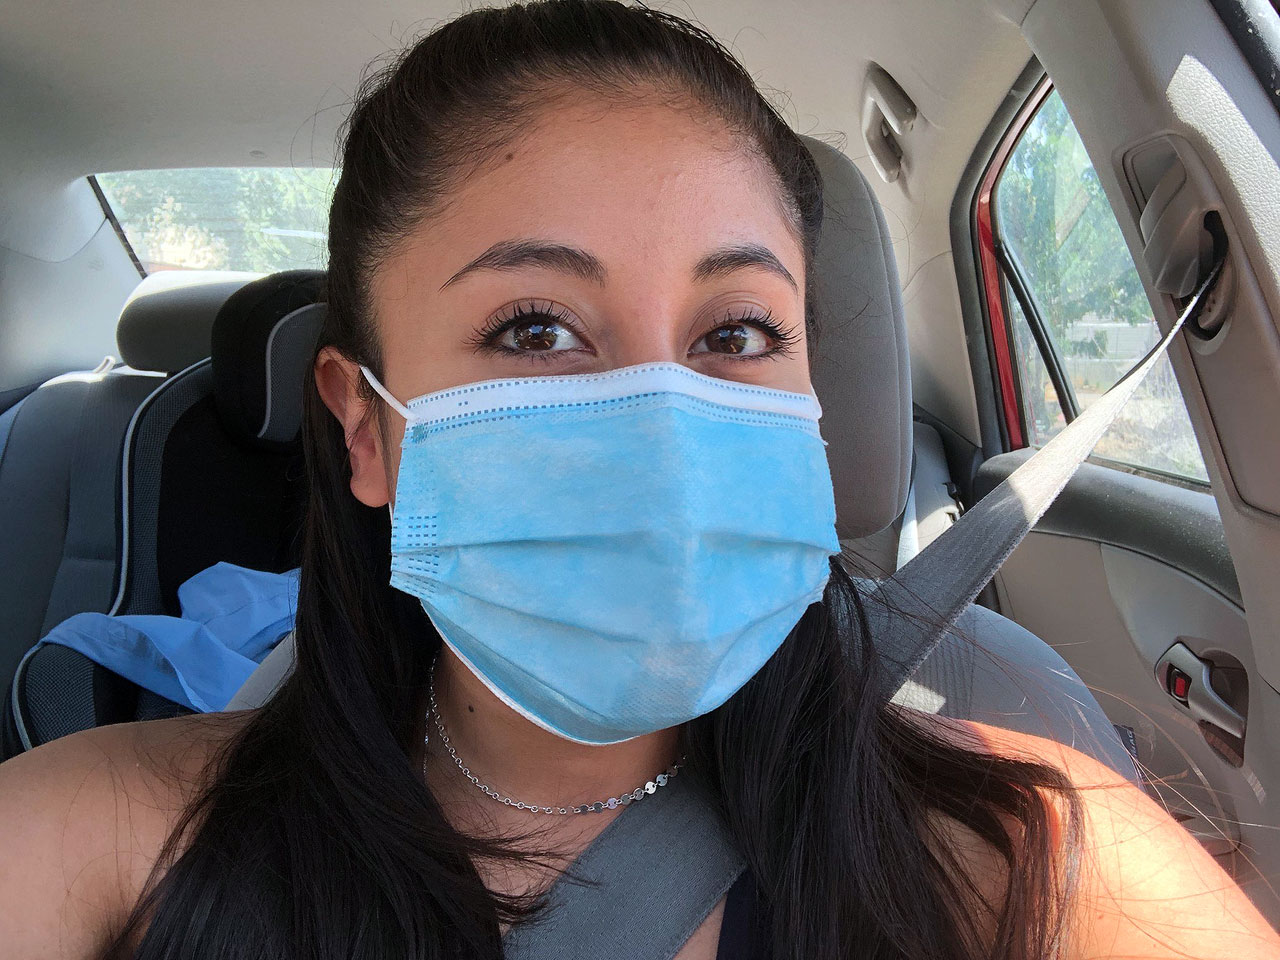 Guadalupe Gomez shares a mask selfie